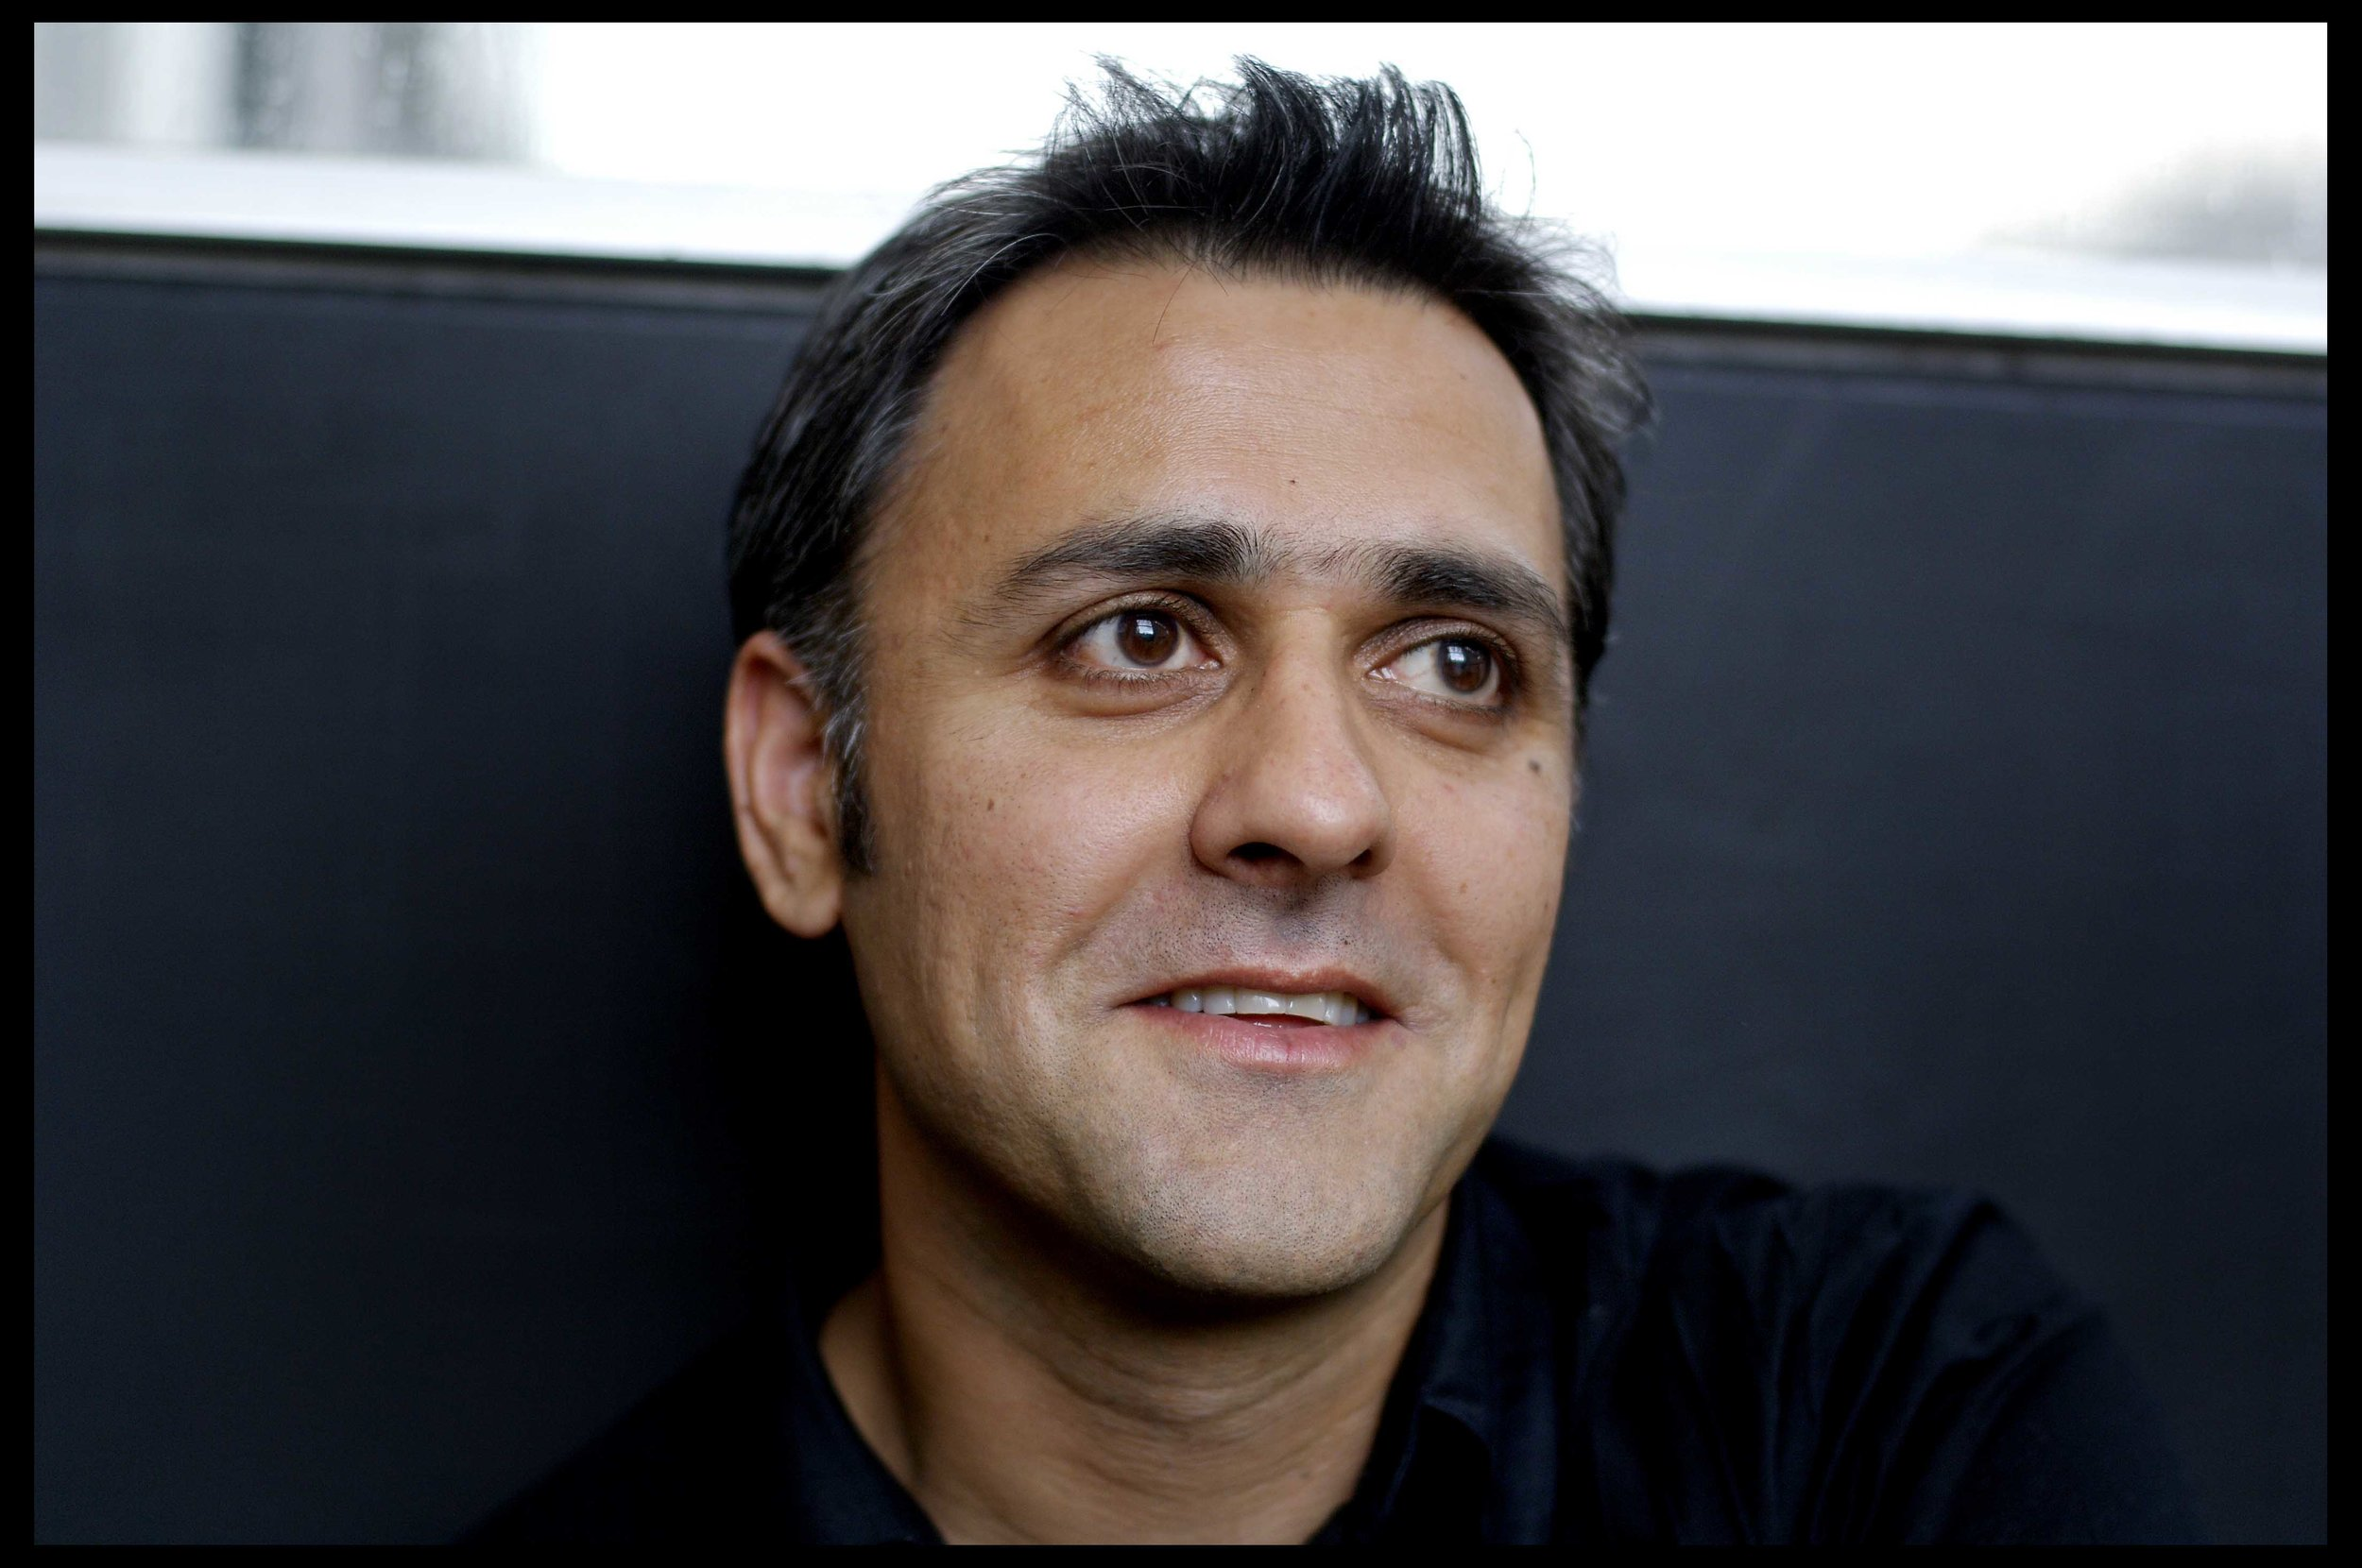 Dalijit Nagra, Wycliffe College, Thurs 8th Nov